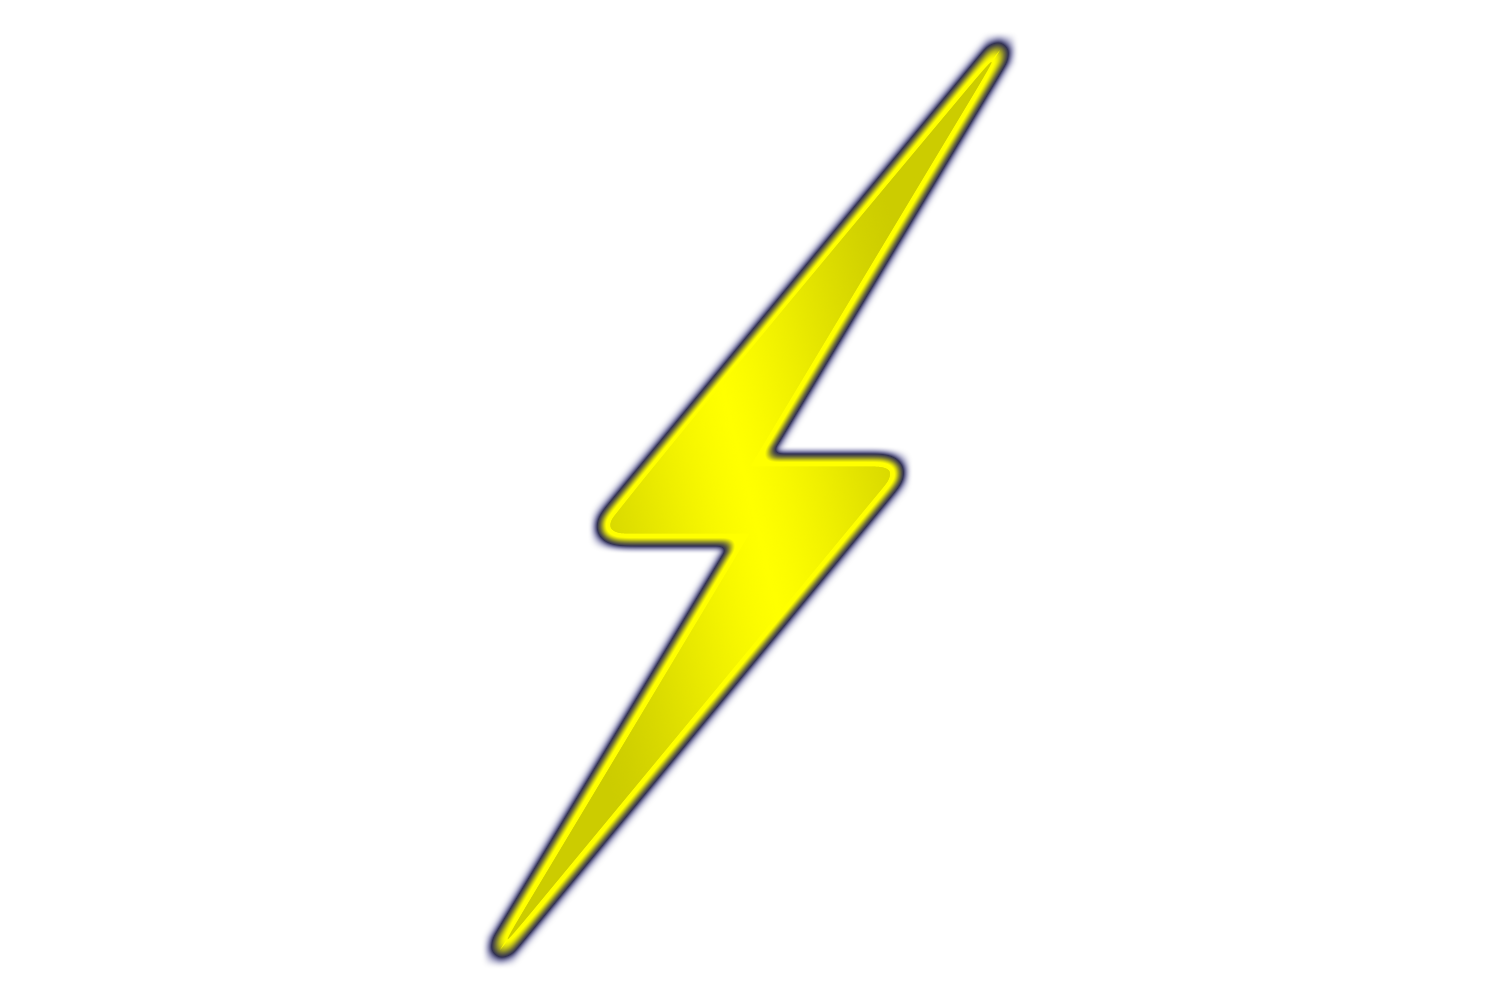 Yellow Lightning Bolt Background image #44043